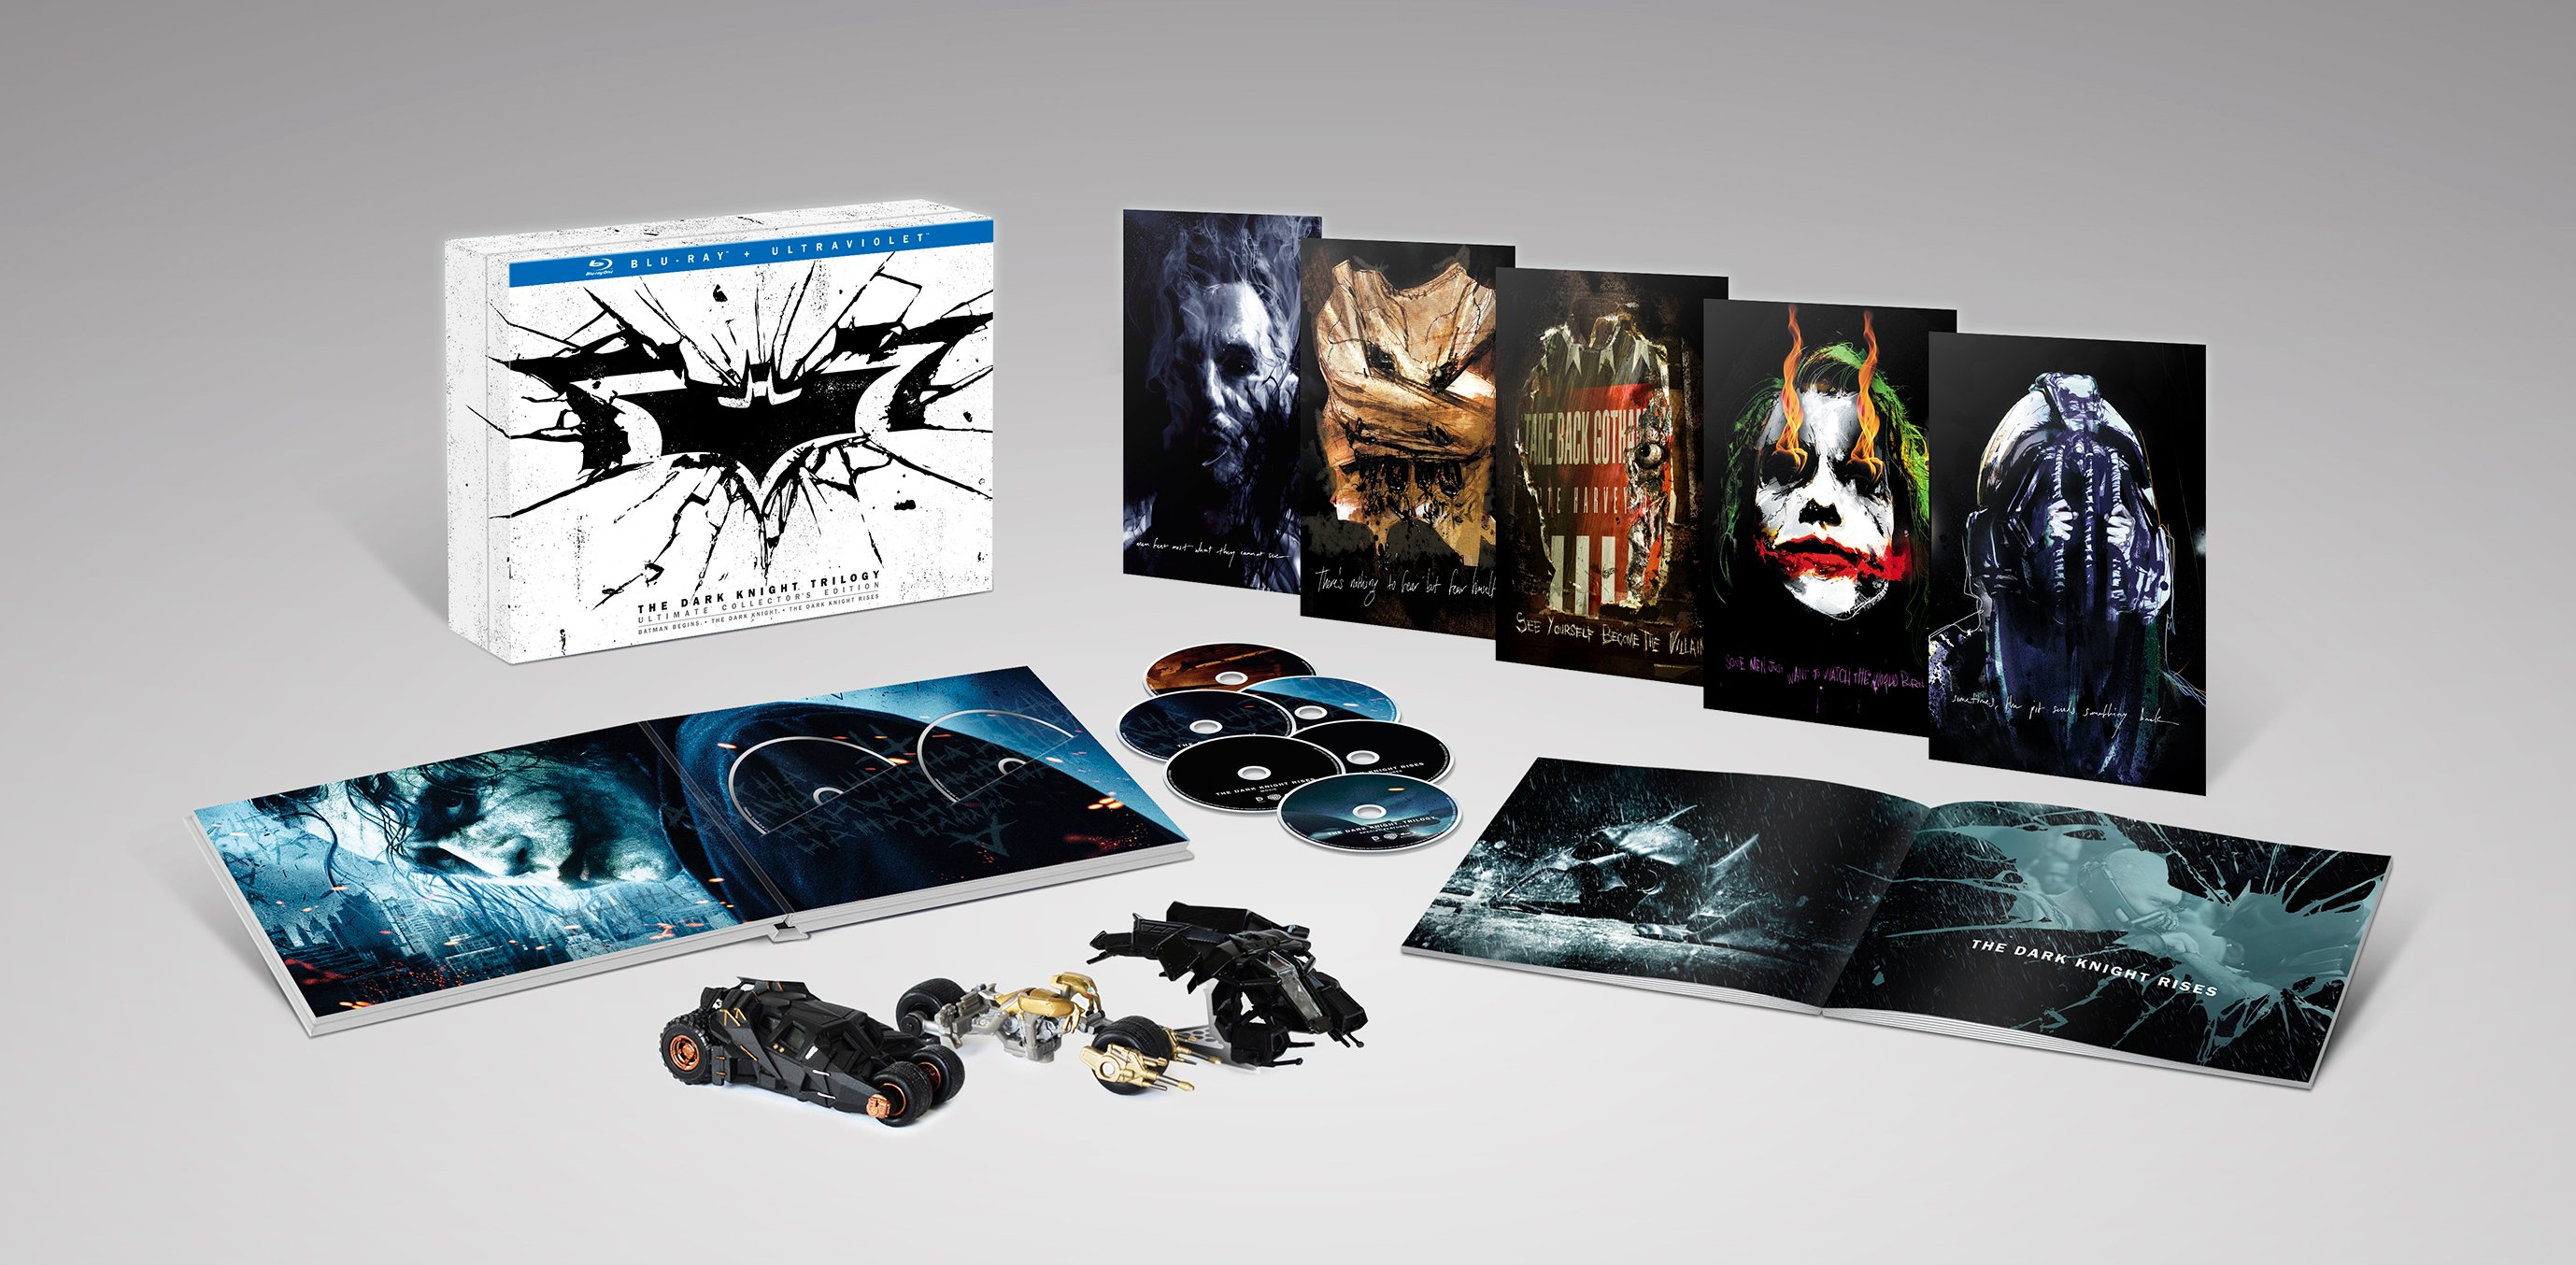 Хочу *_* The Dark Knight Trilogy: Ultimate Collector's Edition#batman - Изображение 1